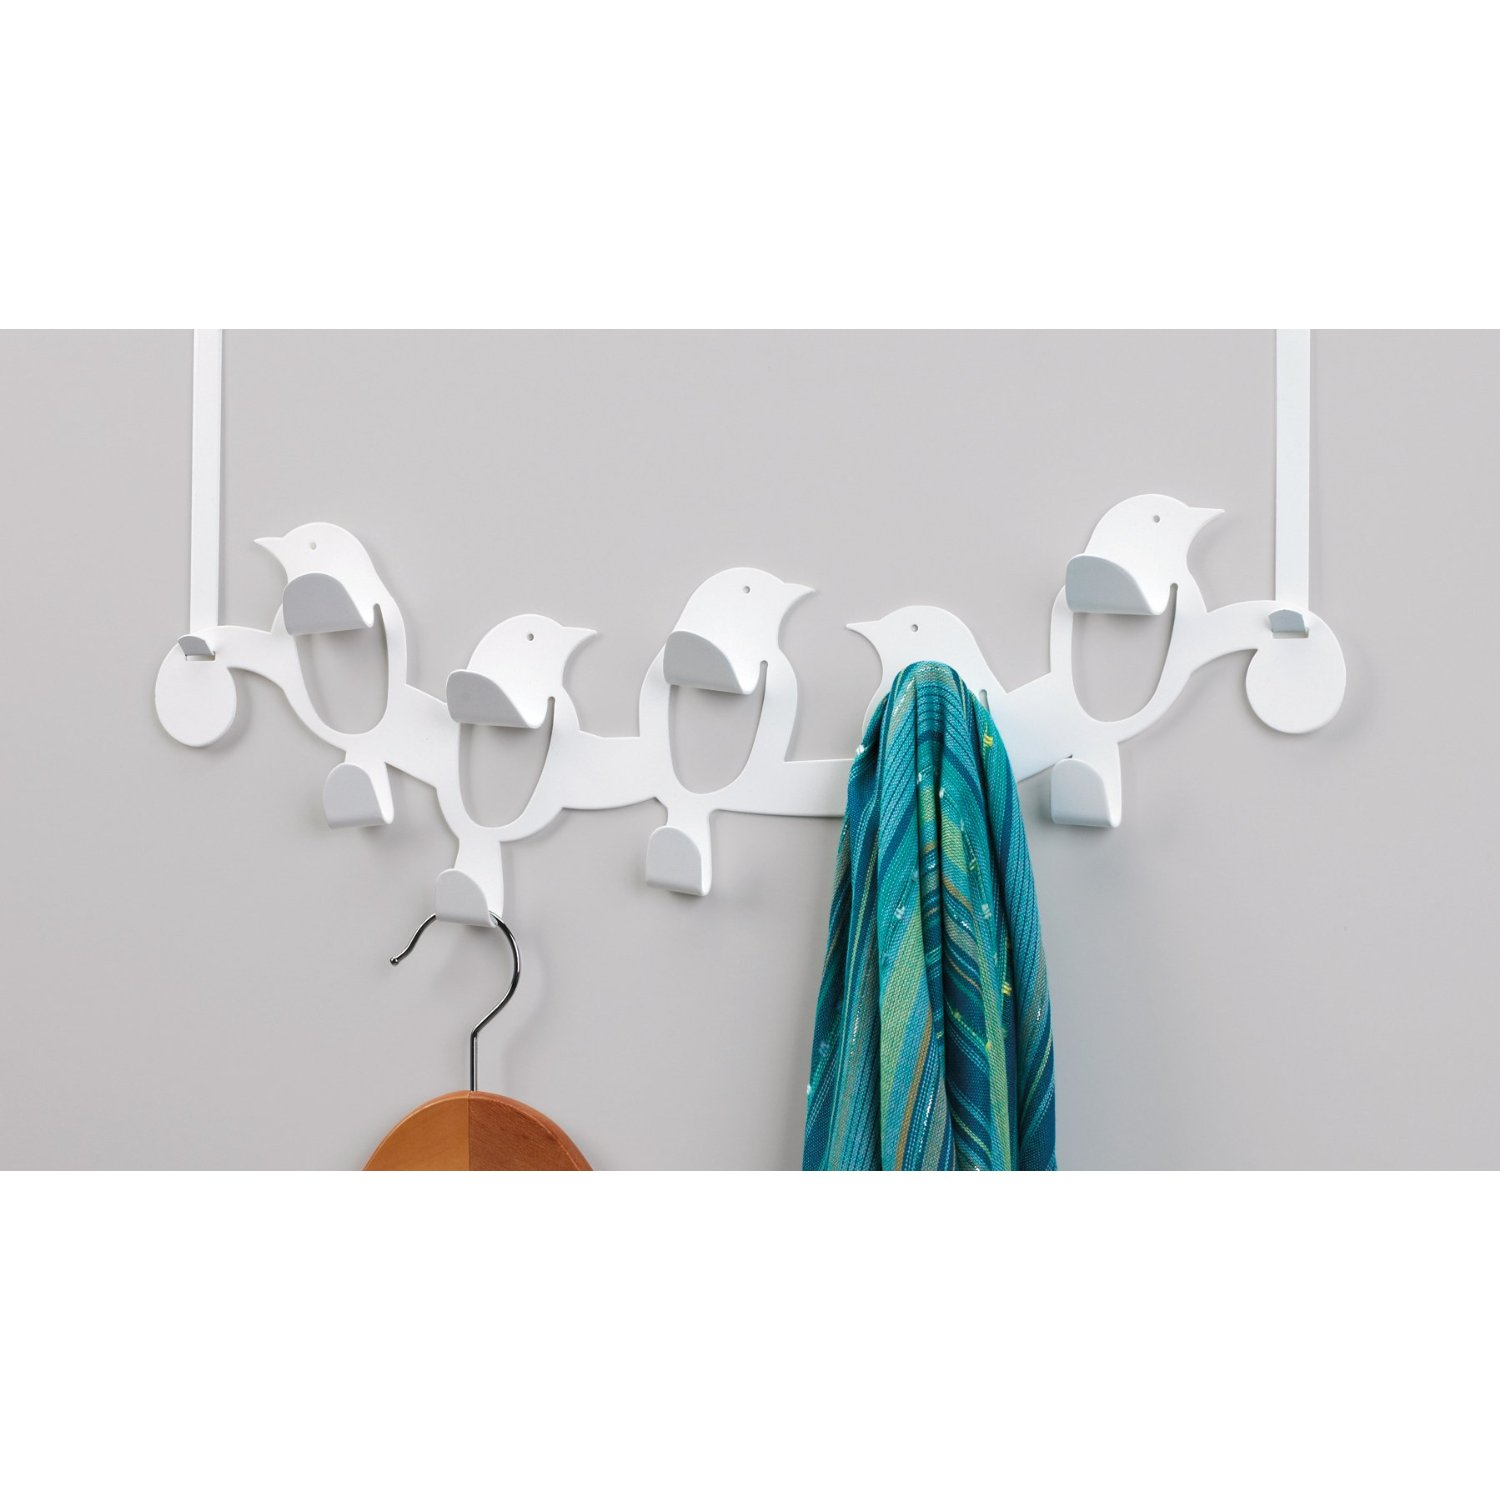 A Whimsical Over The Door Hook Solution   Umbra Birdseye Multi Hook ($25)  From Amazon.com.